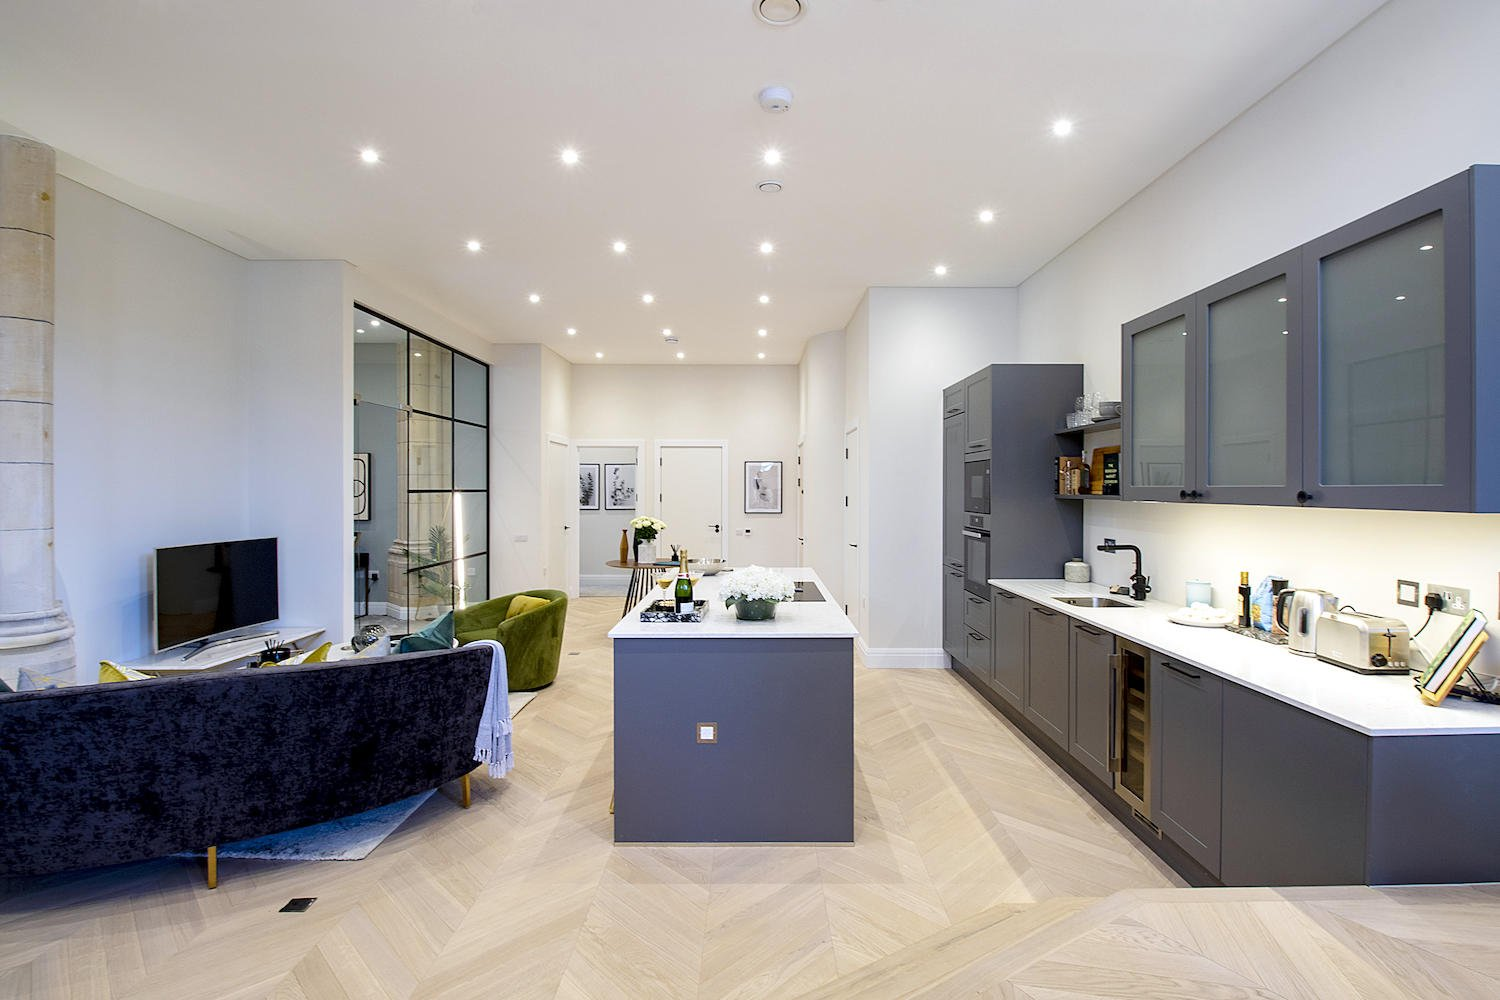 House for sale in North London, Finchley